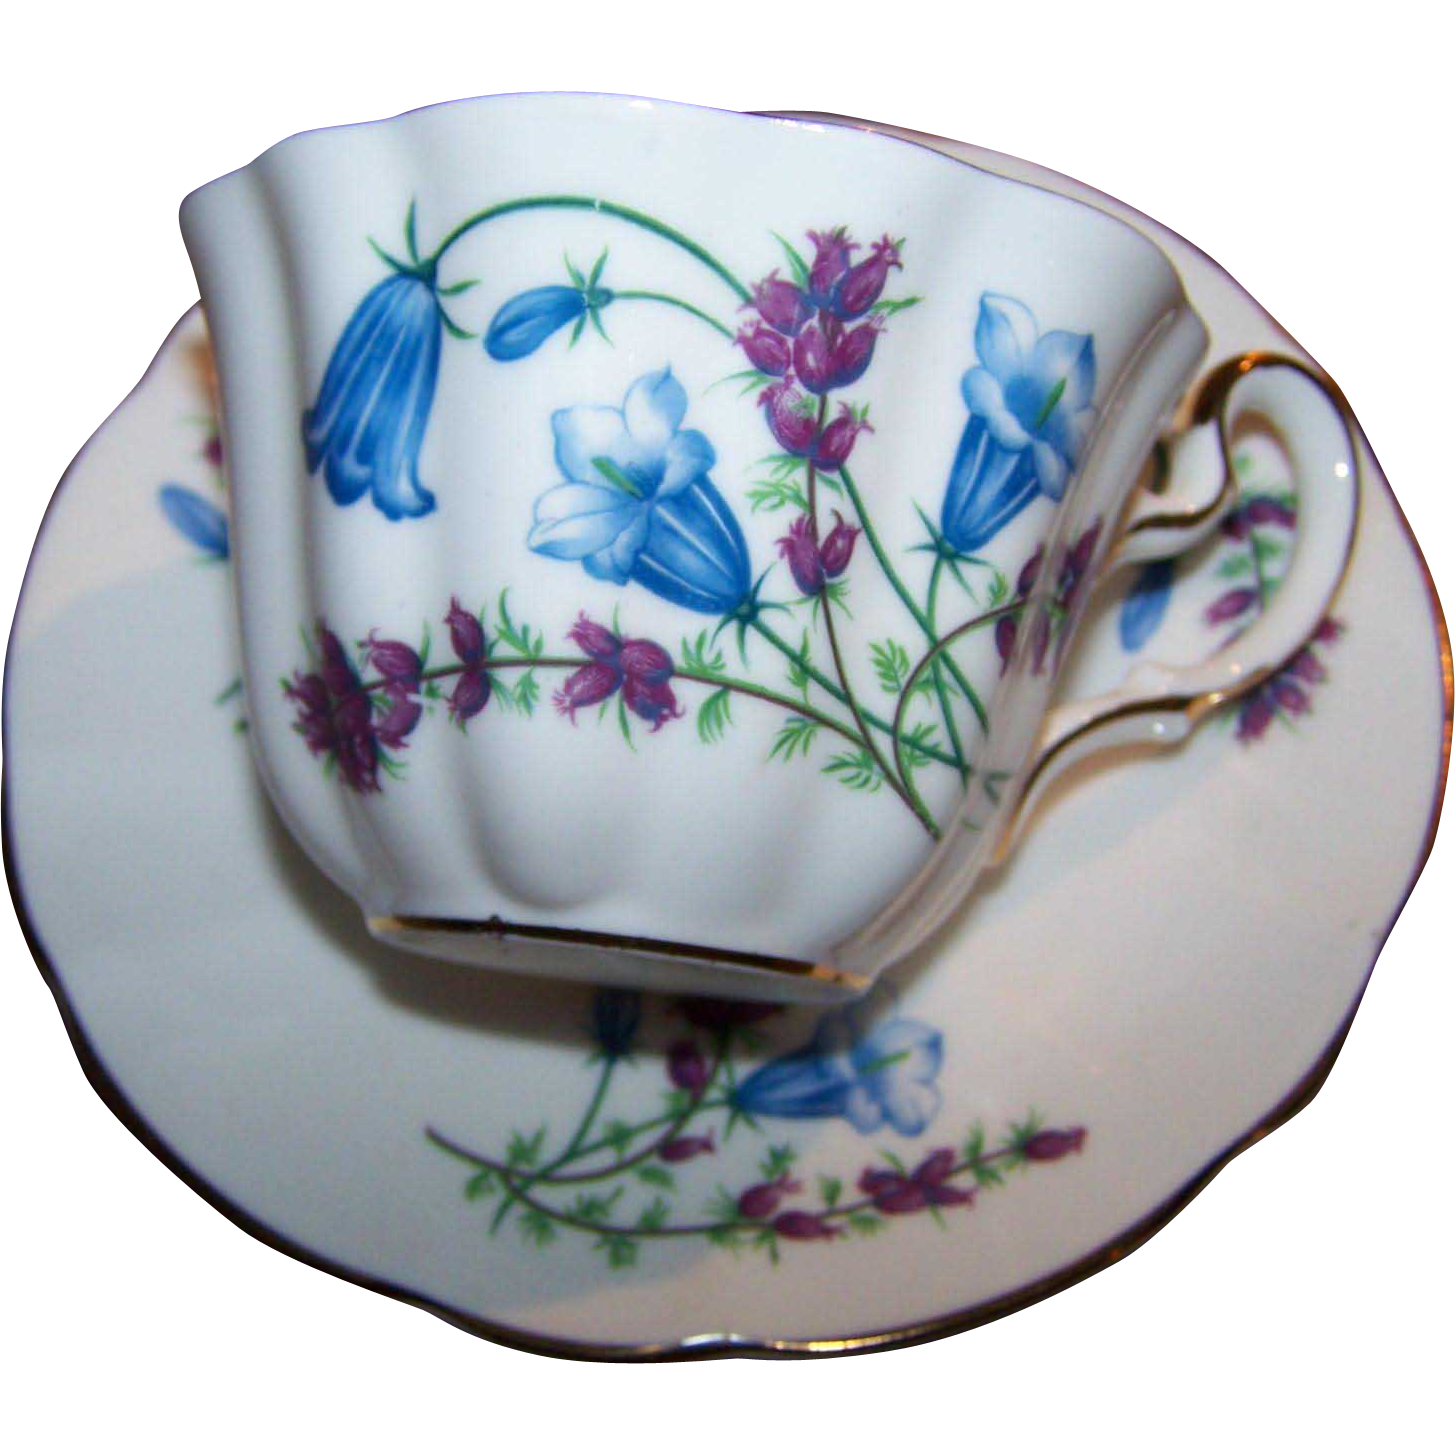 Sweet Vintage Tea Cup Saucer Set Blue Bell Floral Motif Mayfair England